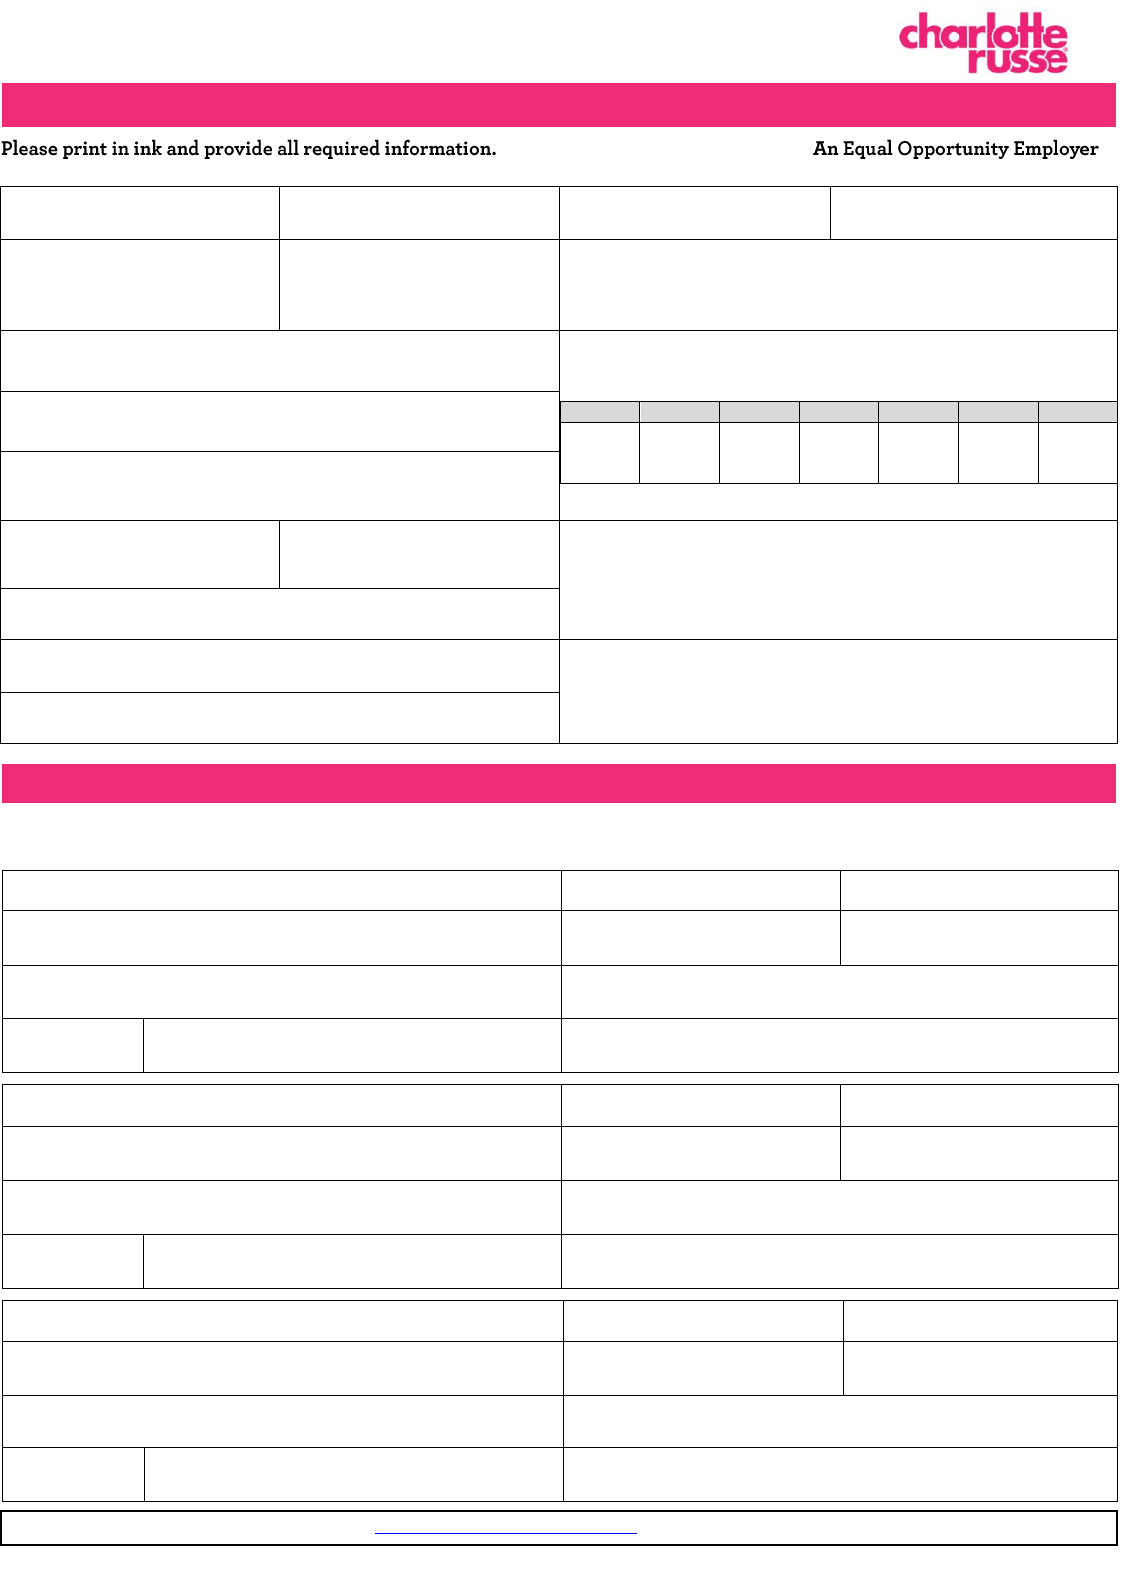 Free Printable Charlotte Russe Job Application Form